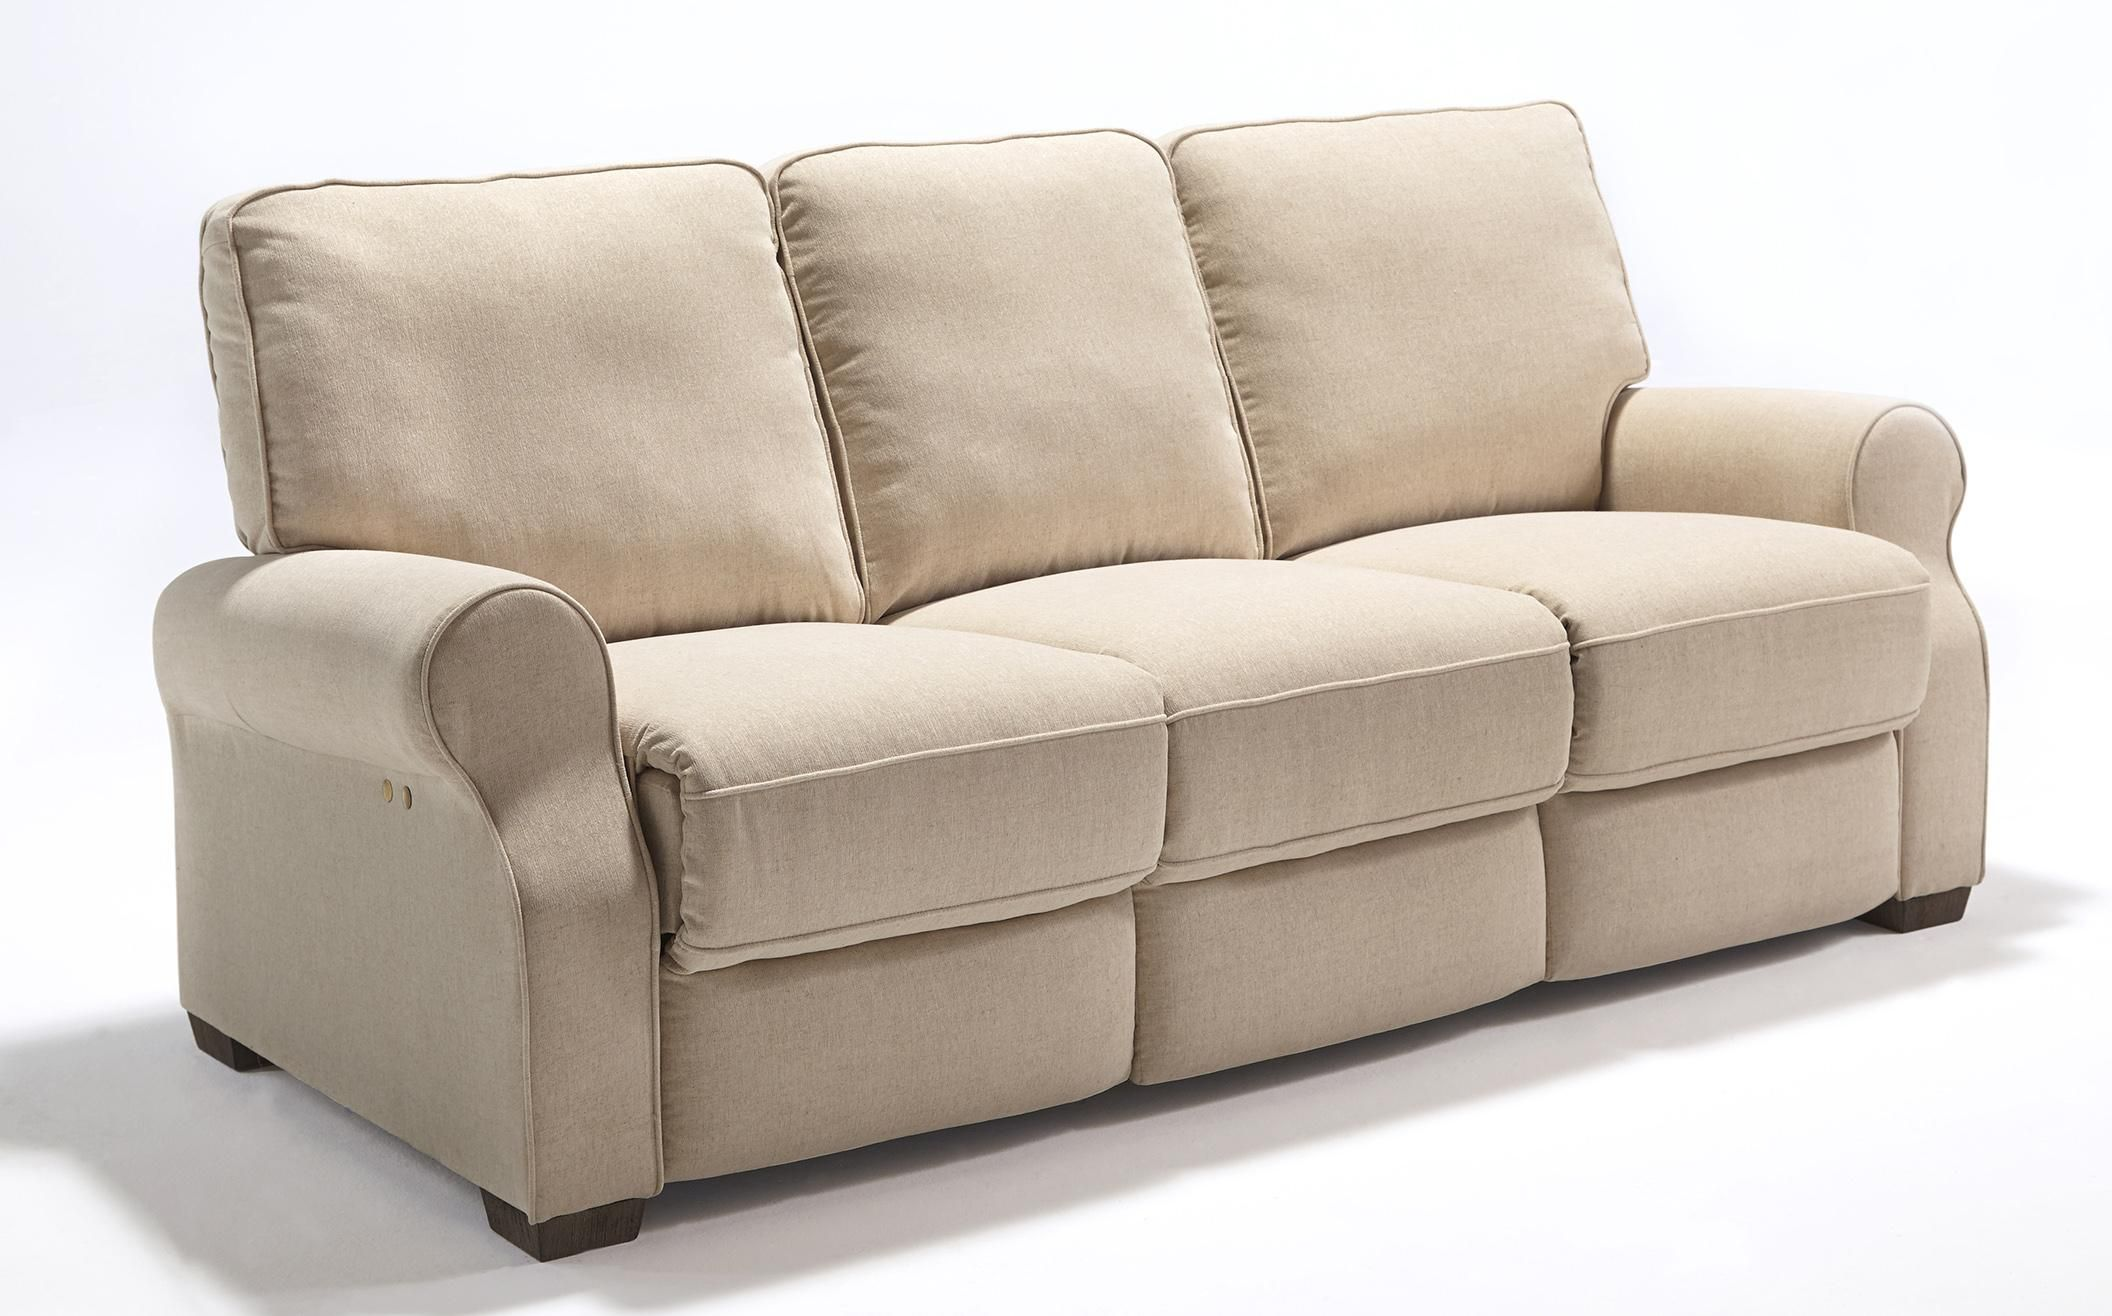 recliner couch large comfortable couches leather microfiber best chair reclining of size sofa double